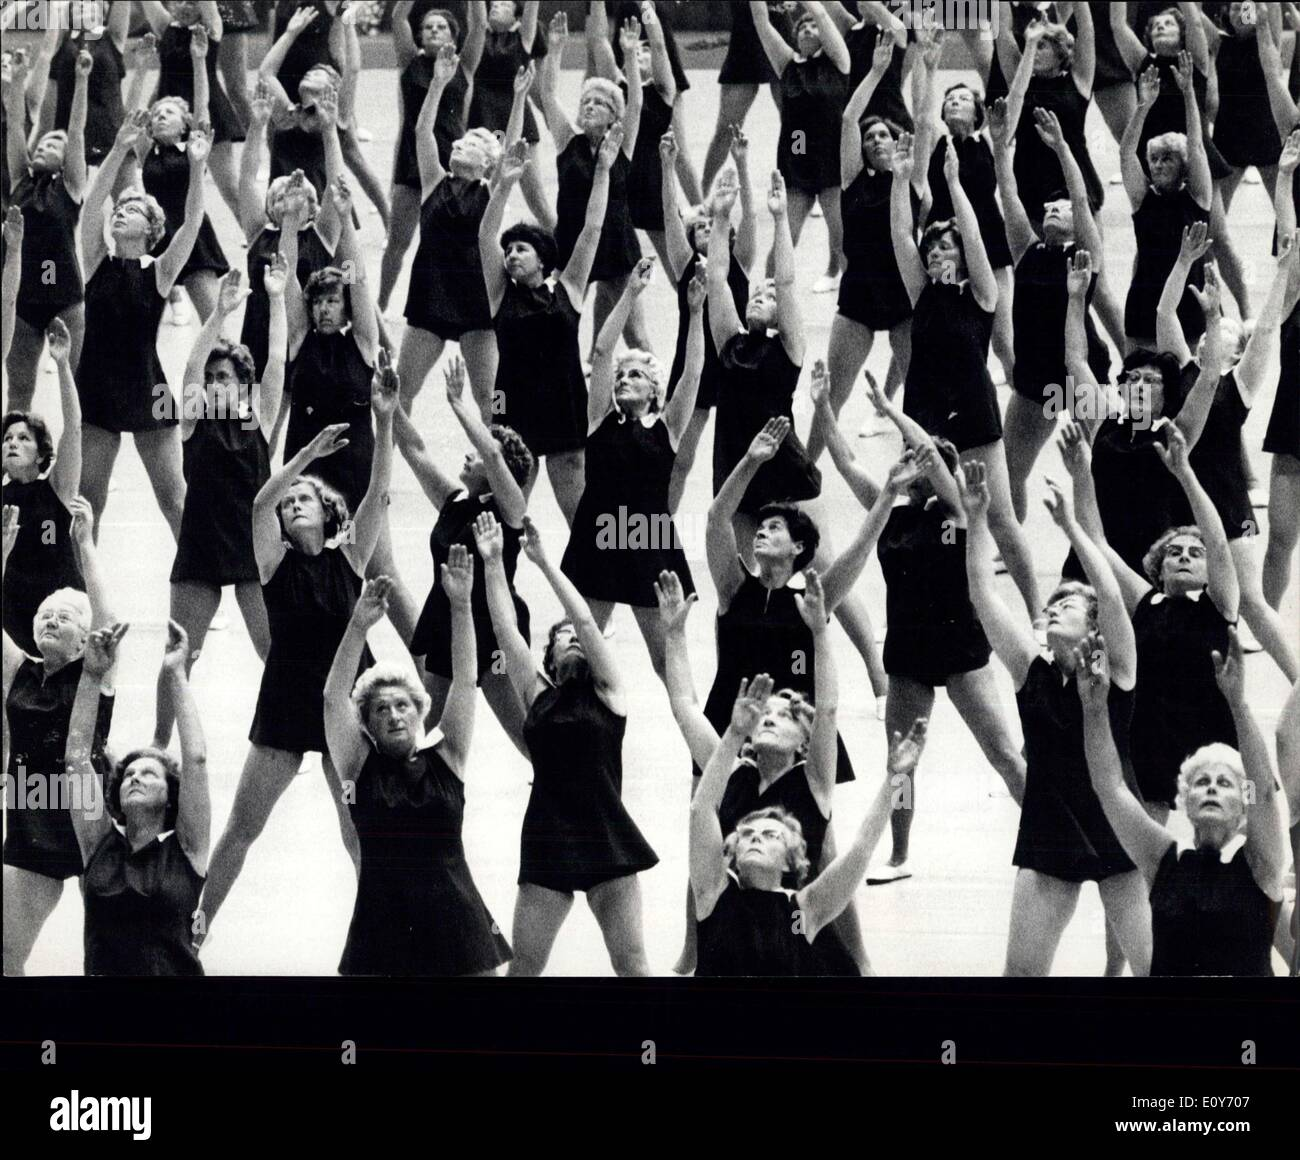 Mar. 07, 1969 - A world symphony of rhythm and grace. OPS: Even housewives, here from the Netherlands, take part Stock Photo